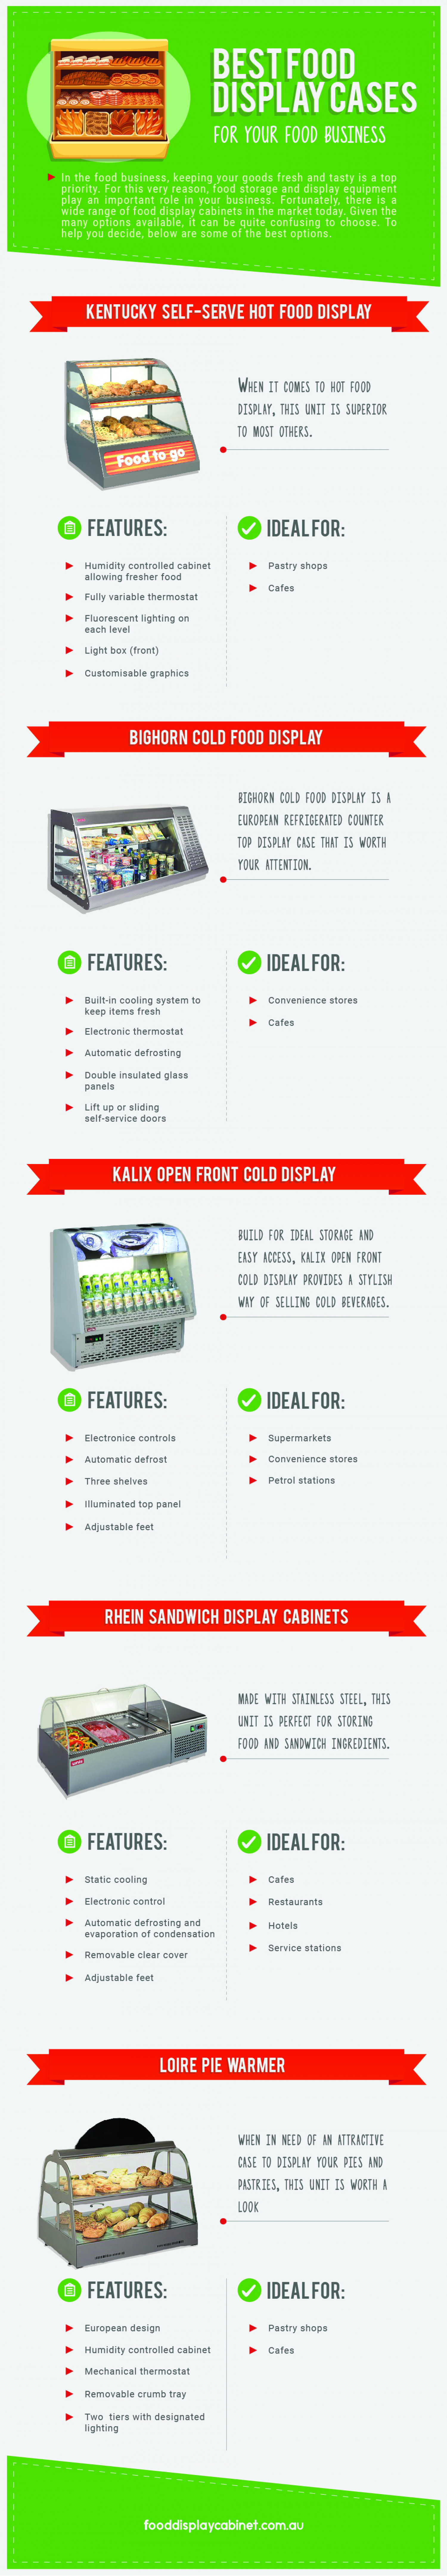 Best Food Display Cases For Your Food Business Infographic